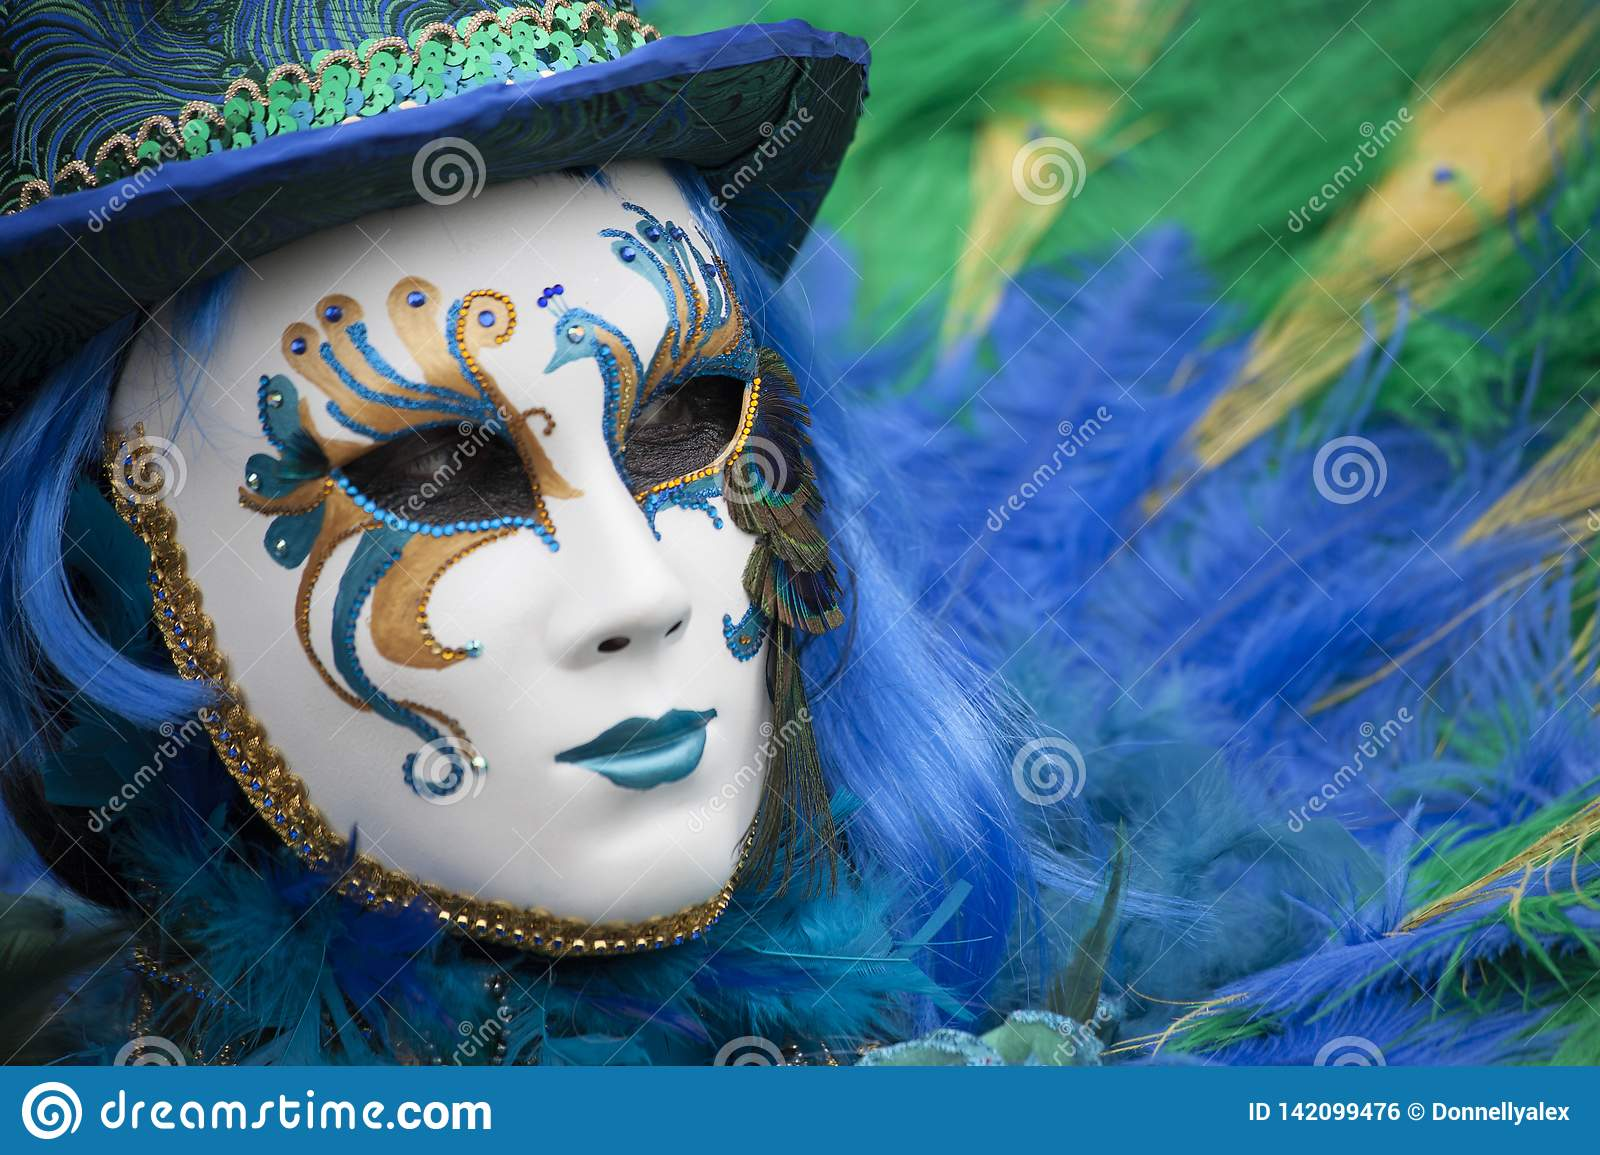 Person at Venice Carnival dressed in a blue, yellow & green venetian costume and venetian mask with a feather Venice Italy